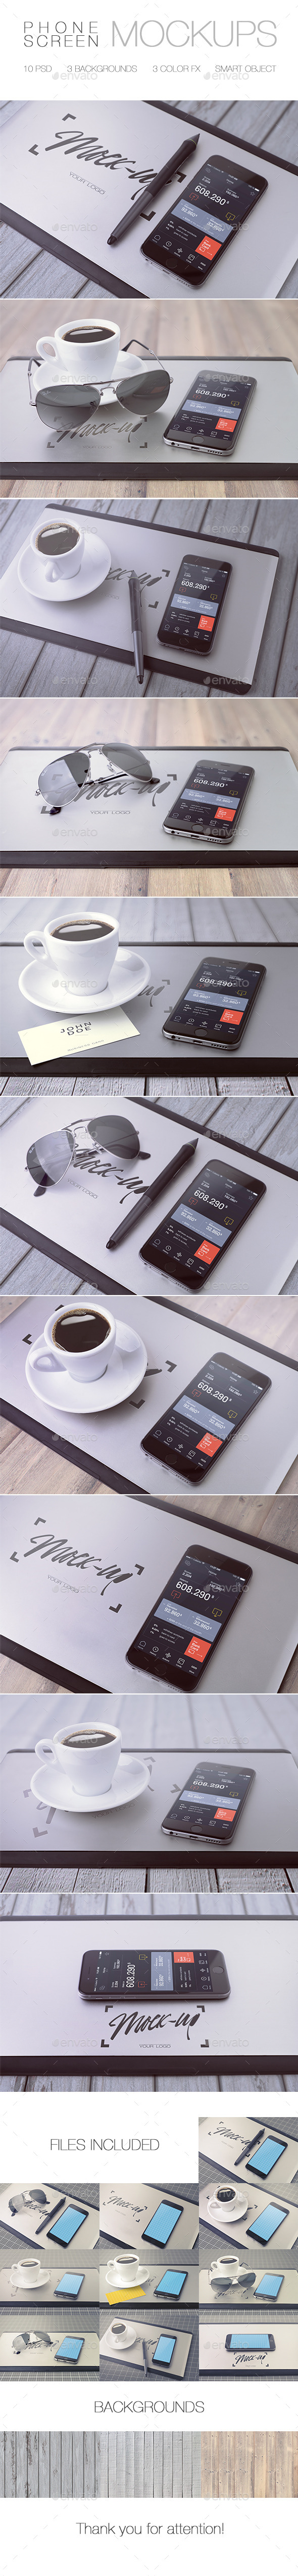 iPhone Mock-Up - Mobile Displays